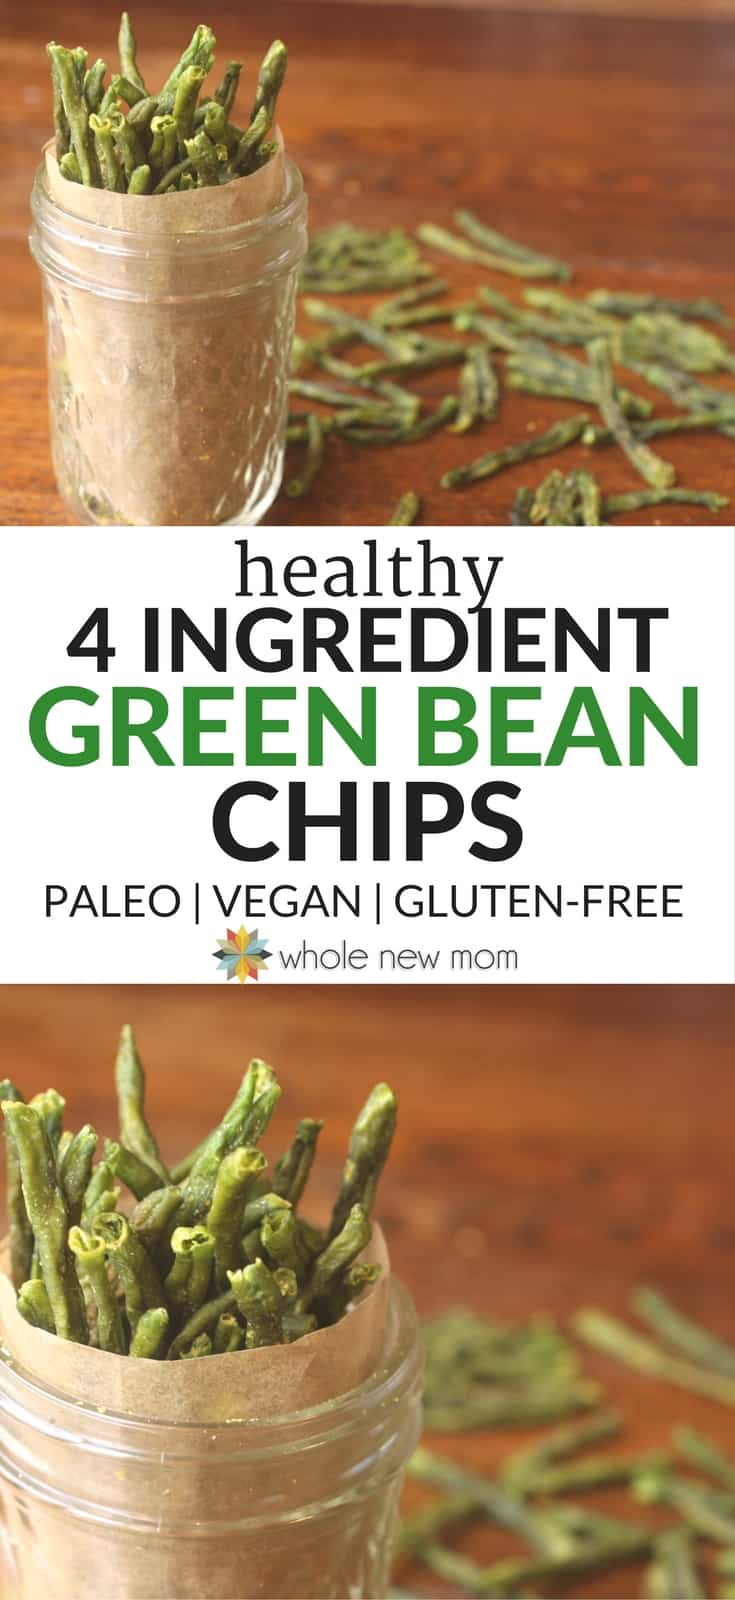 Healthy Veggie Chips! Get more veggies into your diet with these Crispy Green Bean Chips--a great healthy snack that's easy to make!